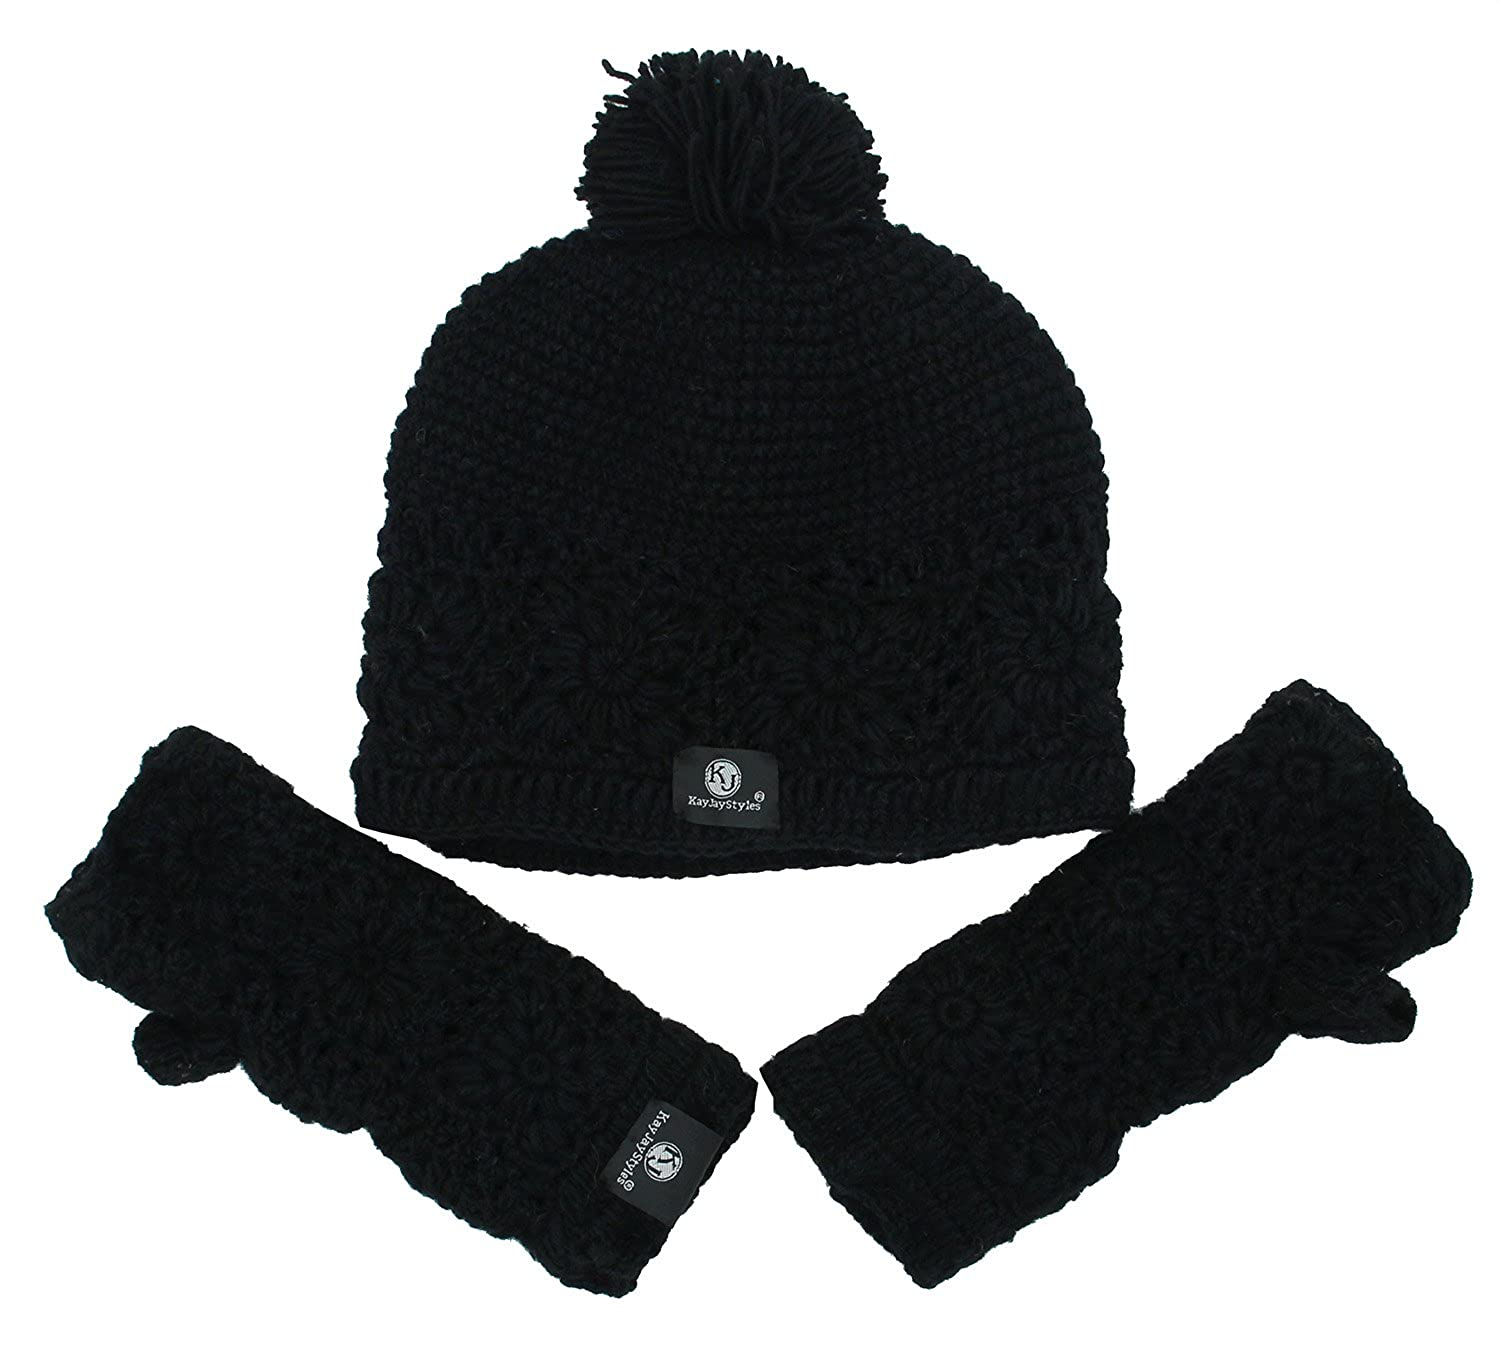 88052203ea0 KayJayStyles Nepal Hand Knit Beanie Ski Wool Hat   Glove Mitten Set (Black)  at Amazon Women s Clothing store